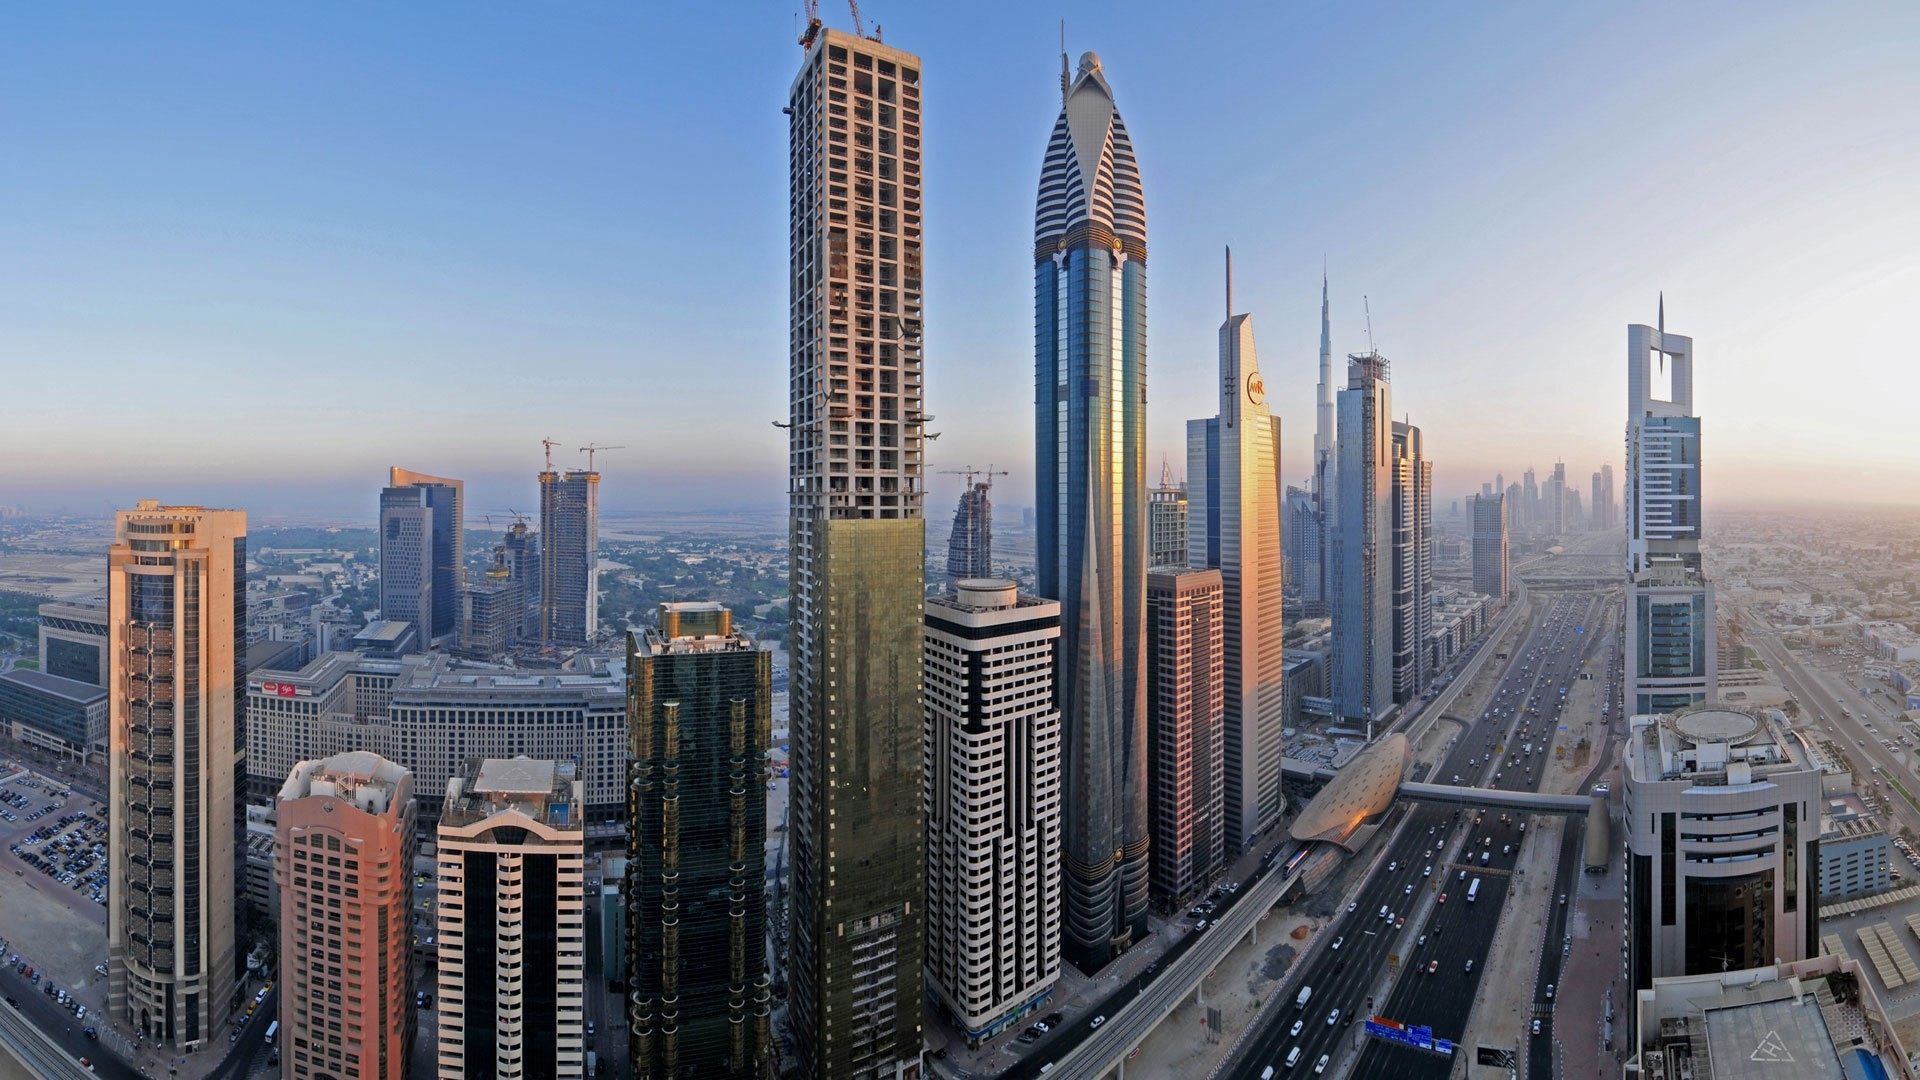 32 most beautiful dubai wallpapers for free download dubai wallpaper 27 gumiabroncs Image collections